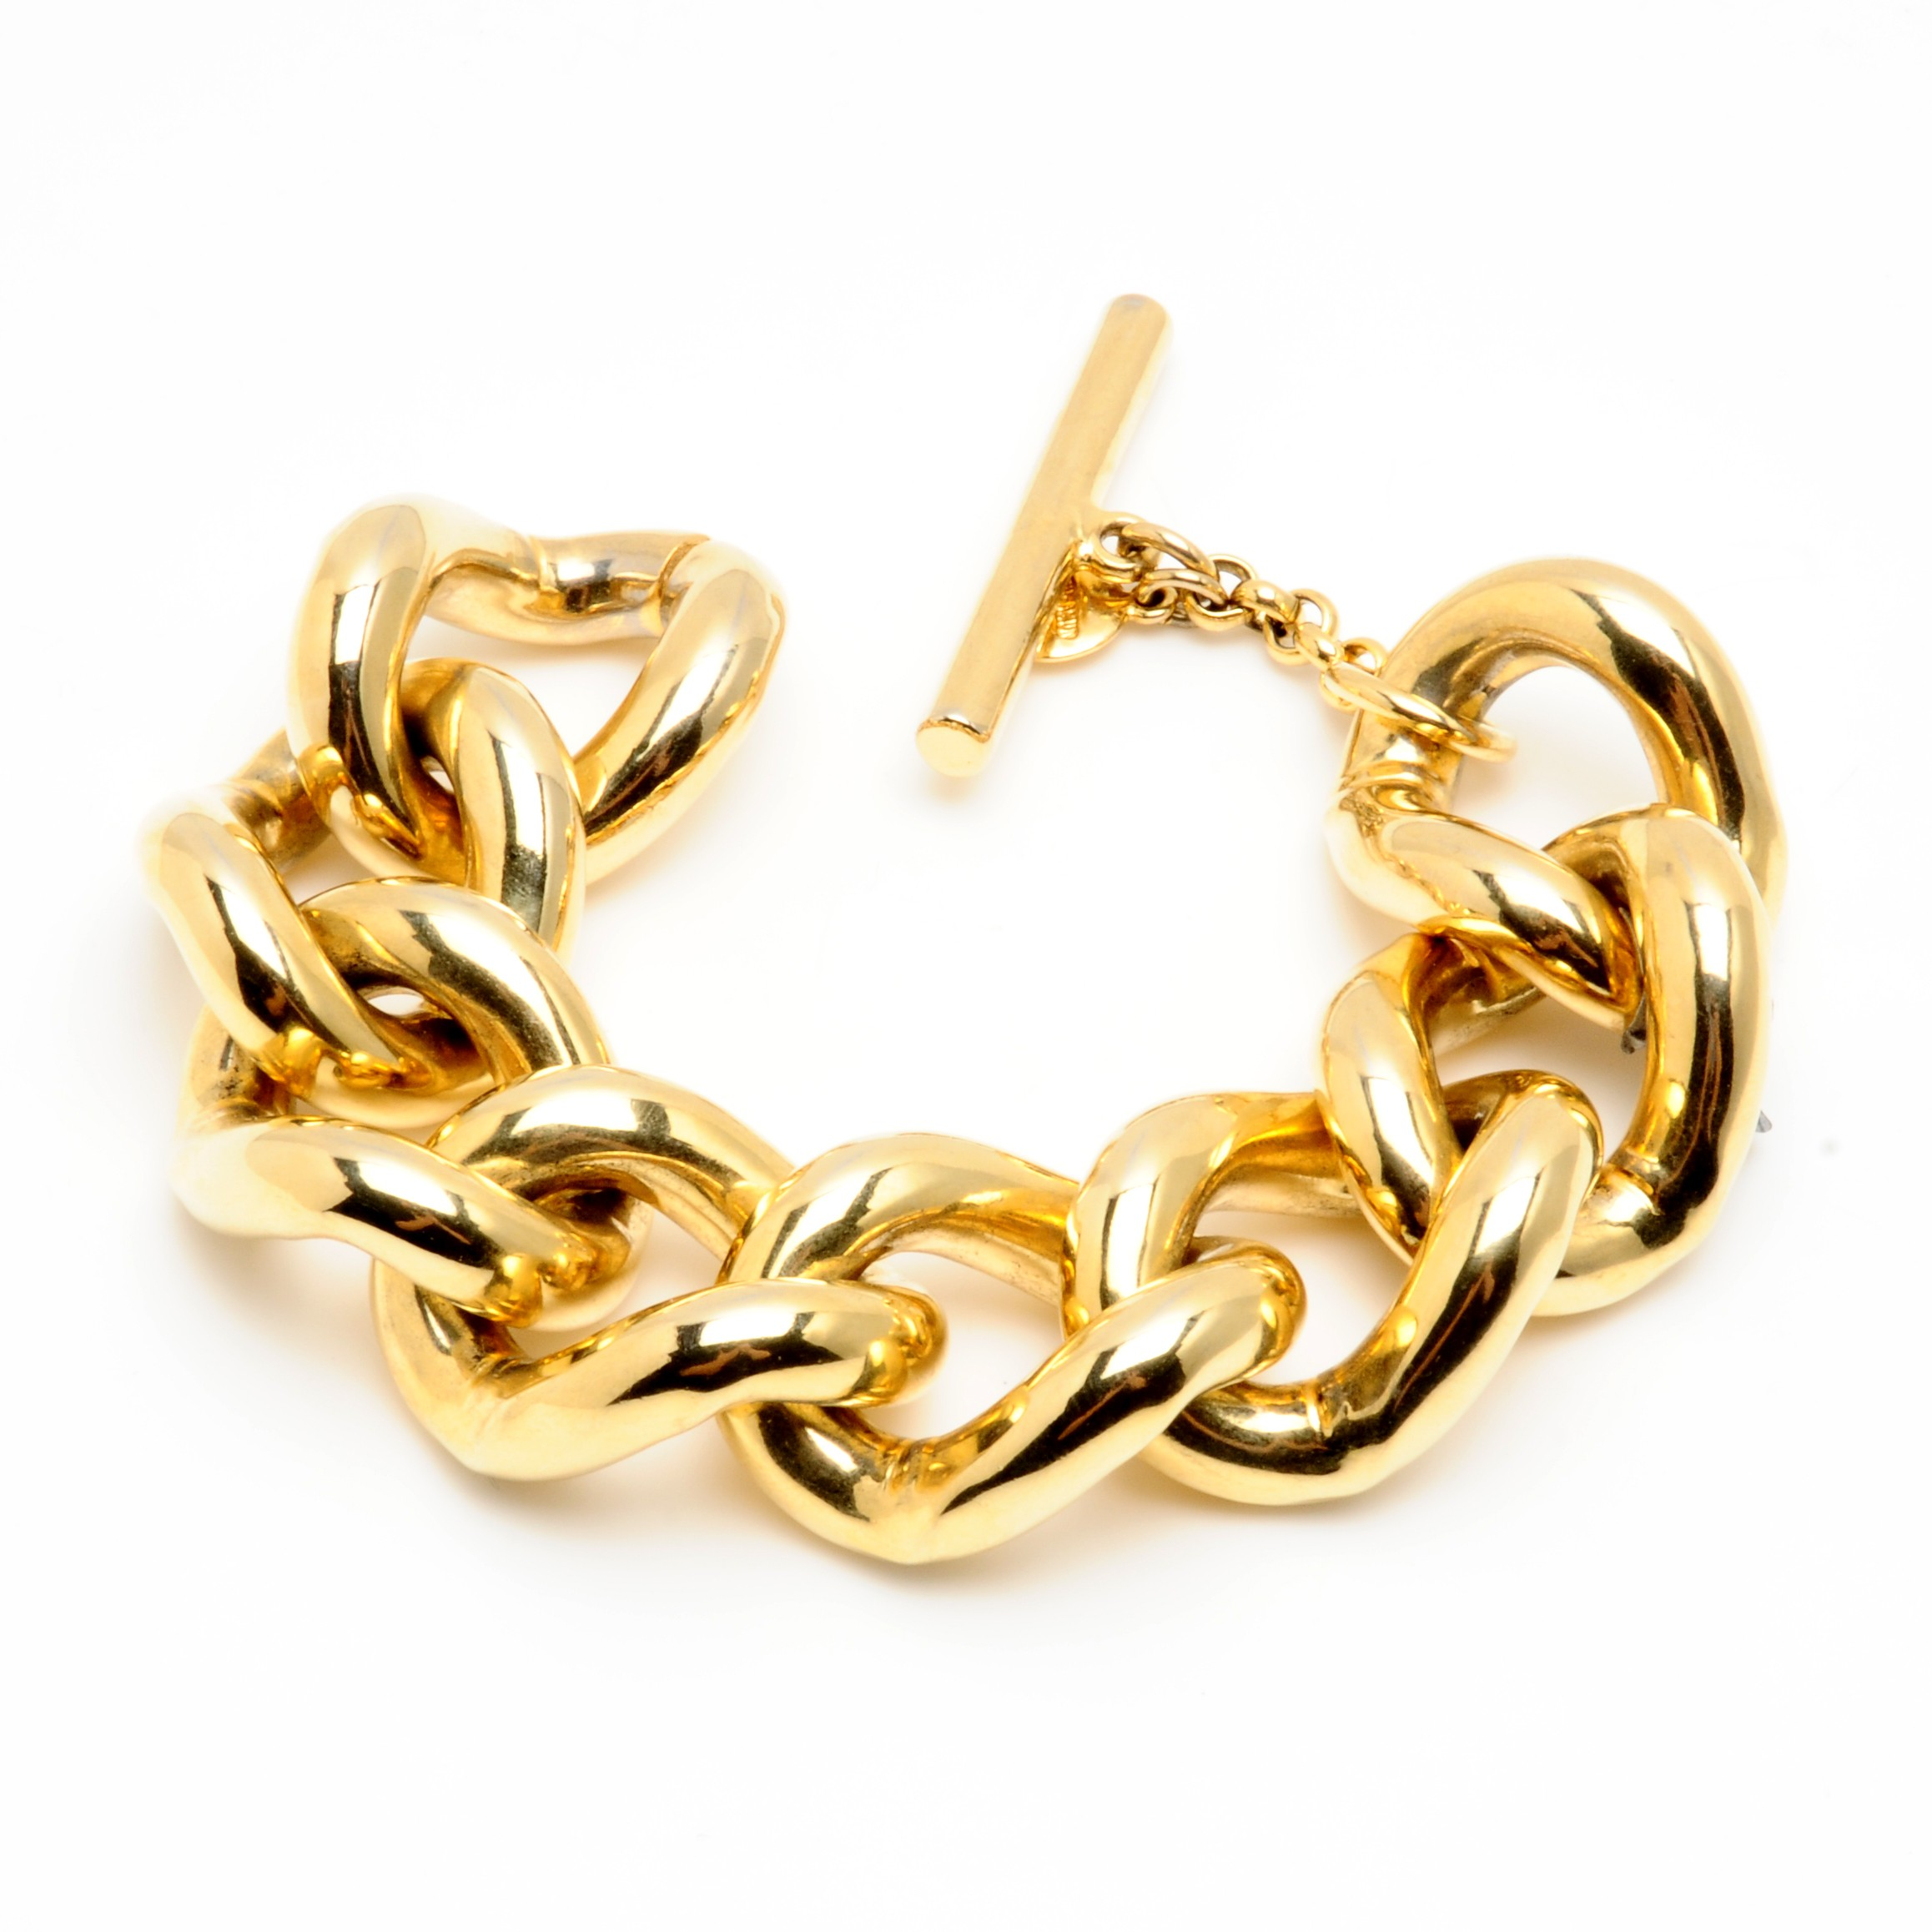 Ben Amun Gold Chain Link Bracelet in Gold | Lyst